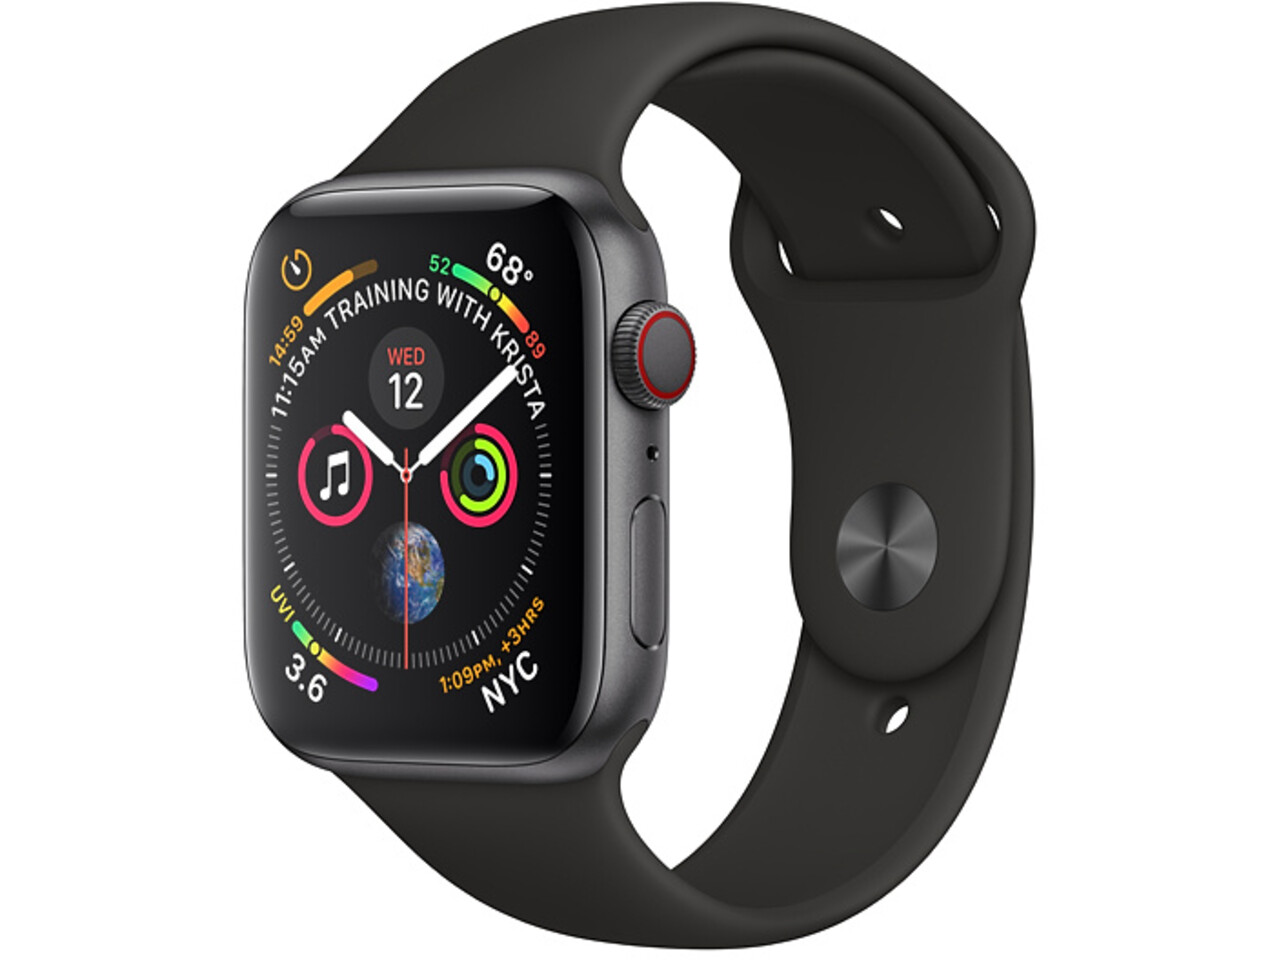 apple watch series 4 cellular 40mm space gray aluminum black sport band